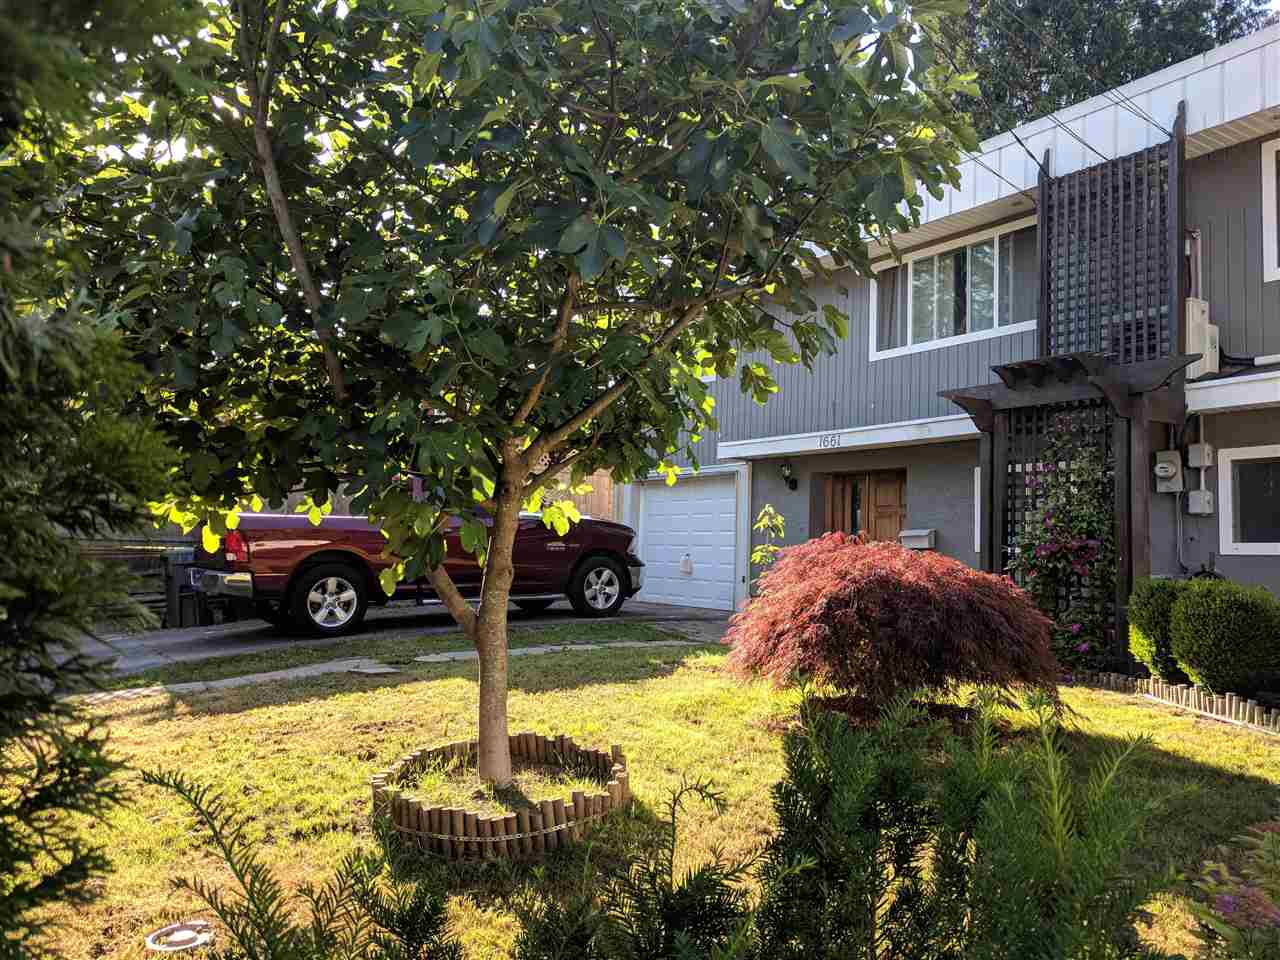 Main Photo: 1661 LINCOLN Avenue in Port Coquitlam: Oxford Heights House 1/2 Duplex for sale : MLS®# R2280325